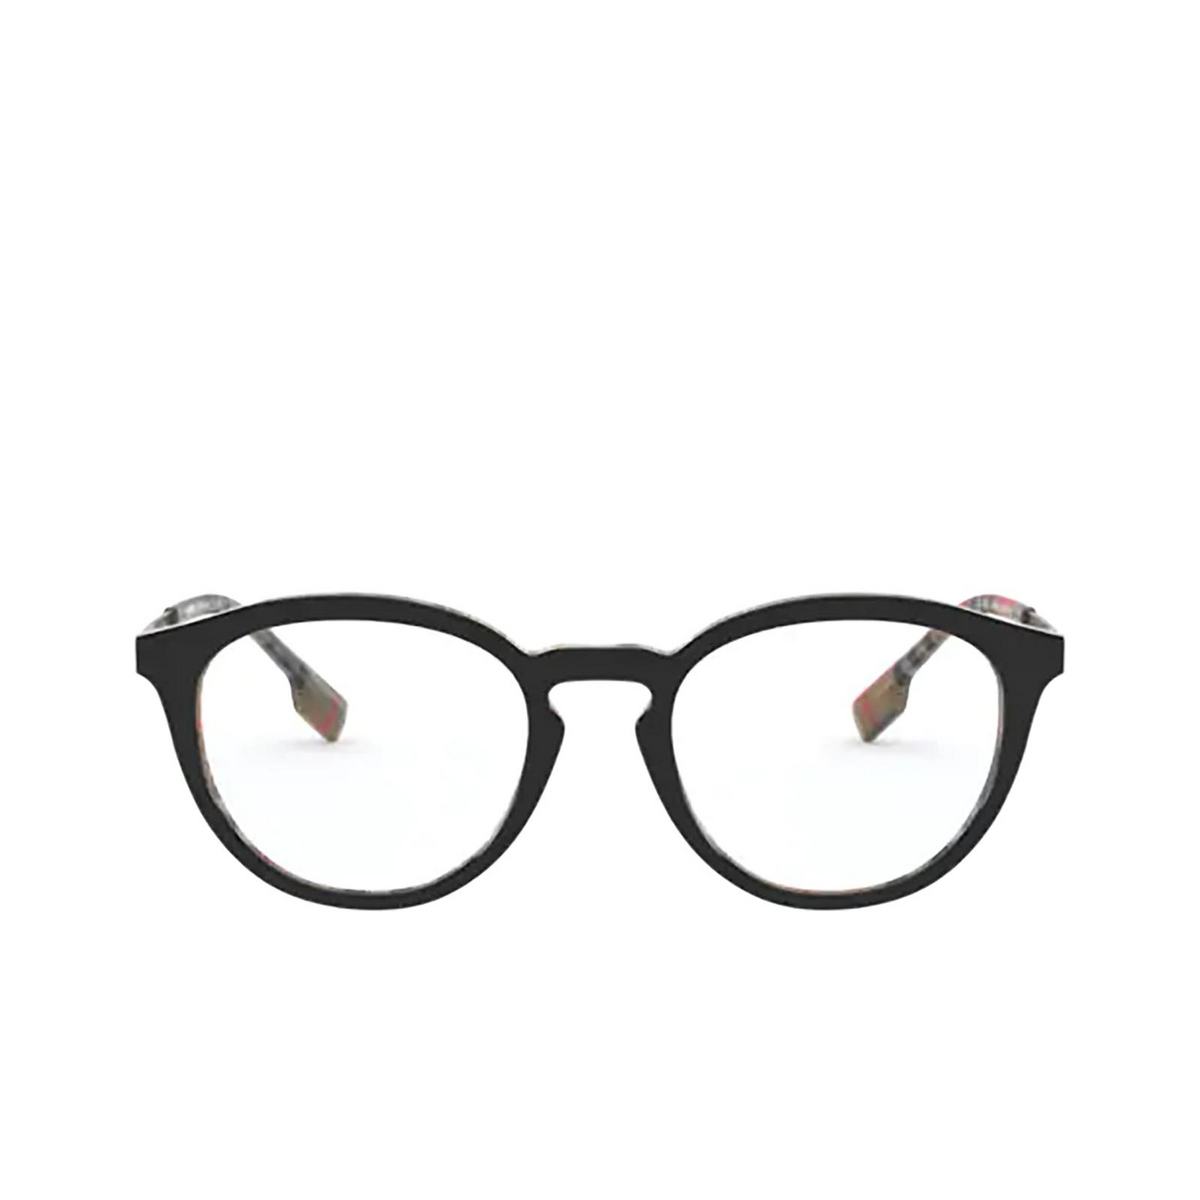 Burberry® Round Eyeglasses: Keats BE2321 color Top Black On Vintage Check 3838 - front view.